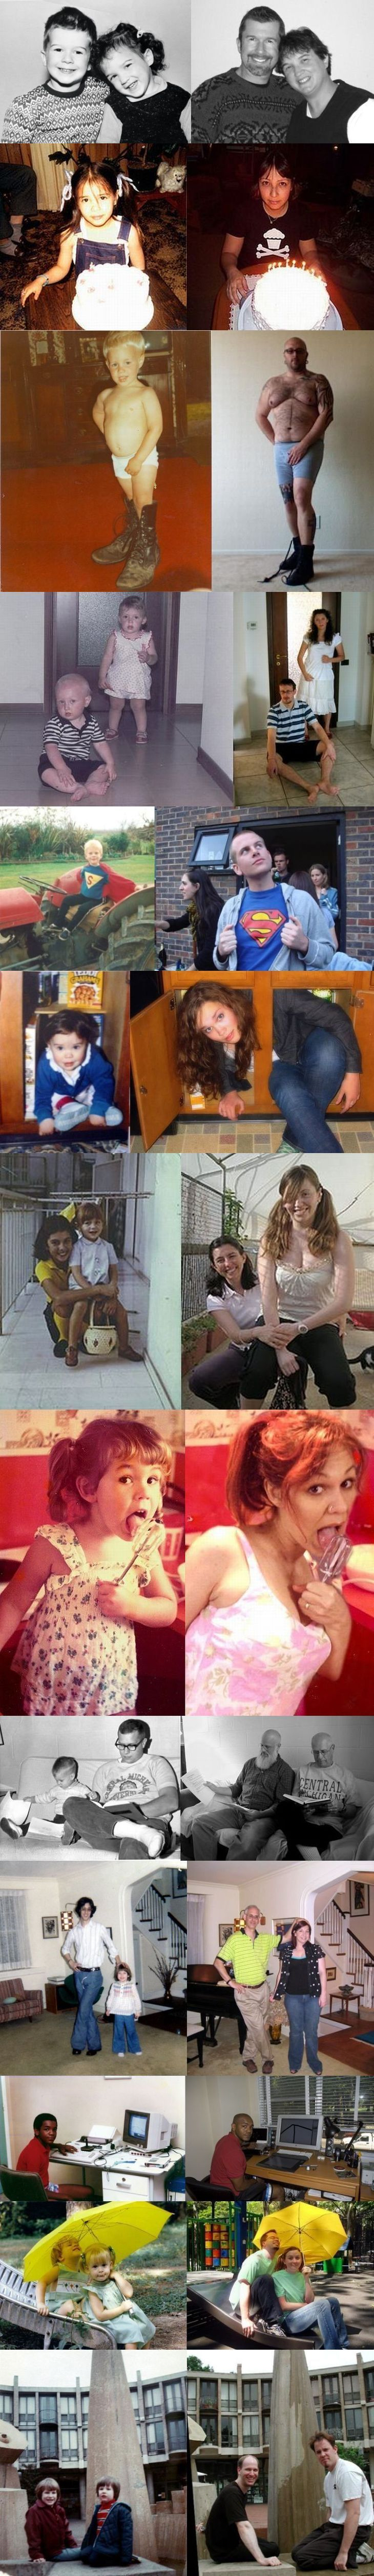 Recreating childhood photos - hilarious gift for parents.